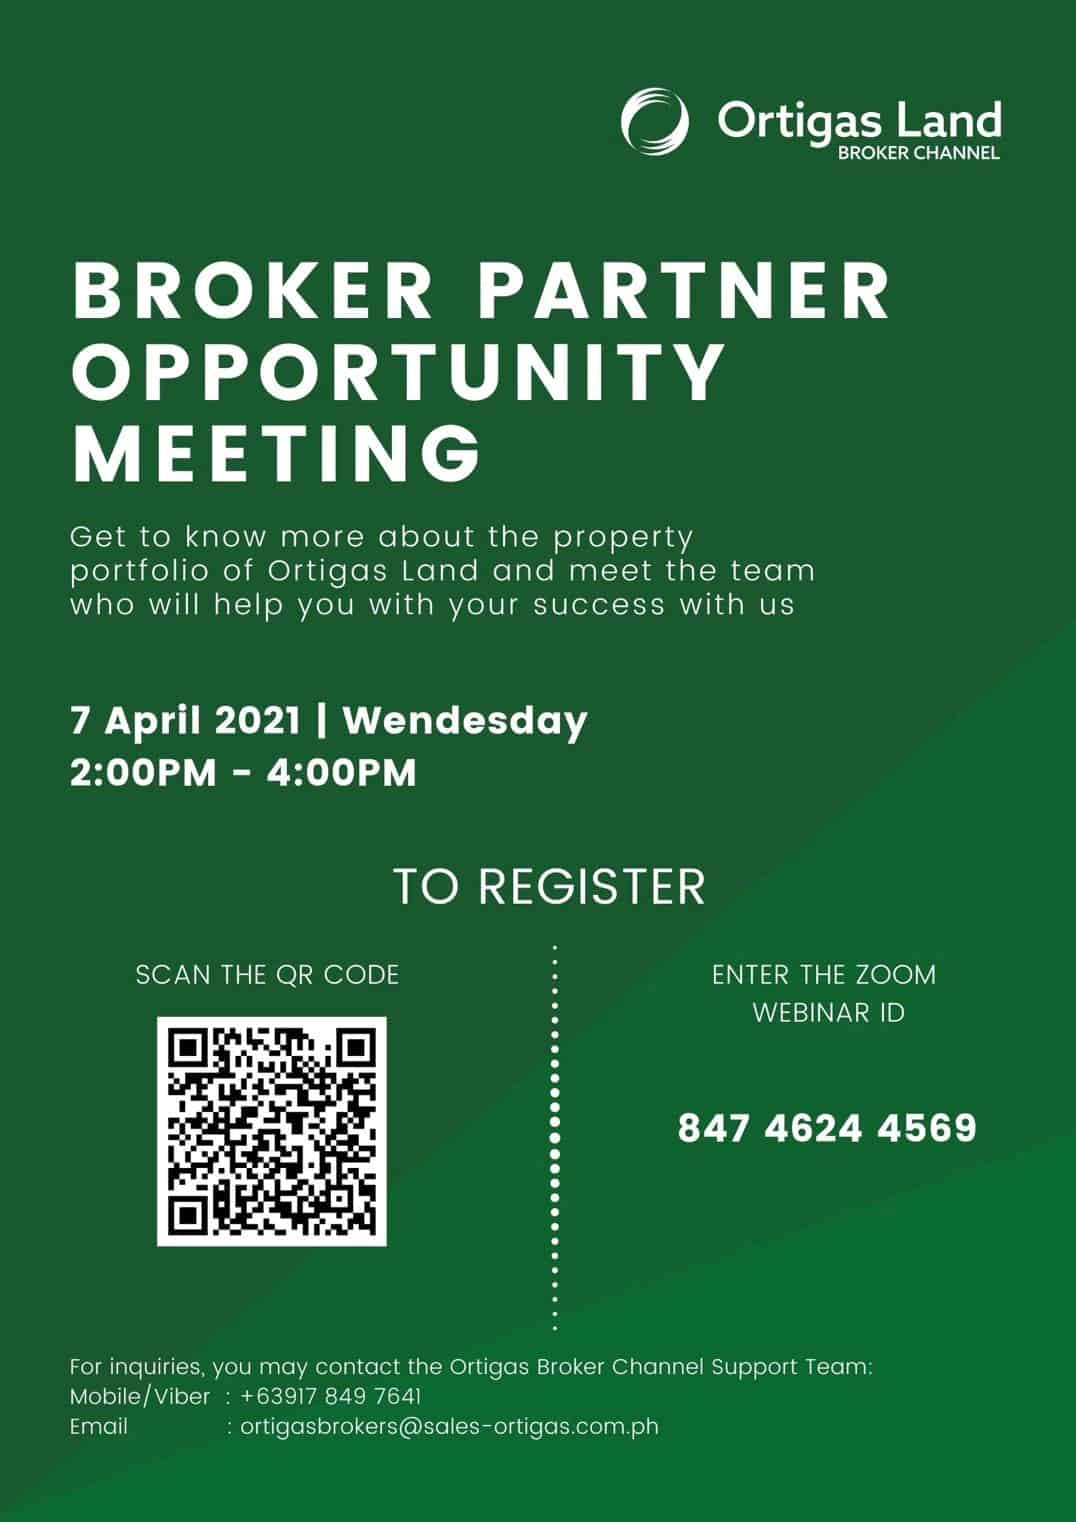 Broker Partner Opportunity